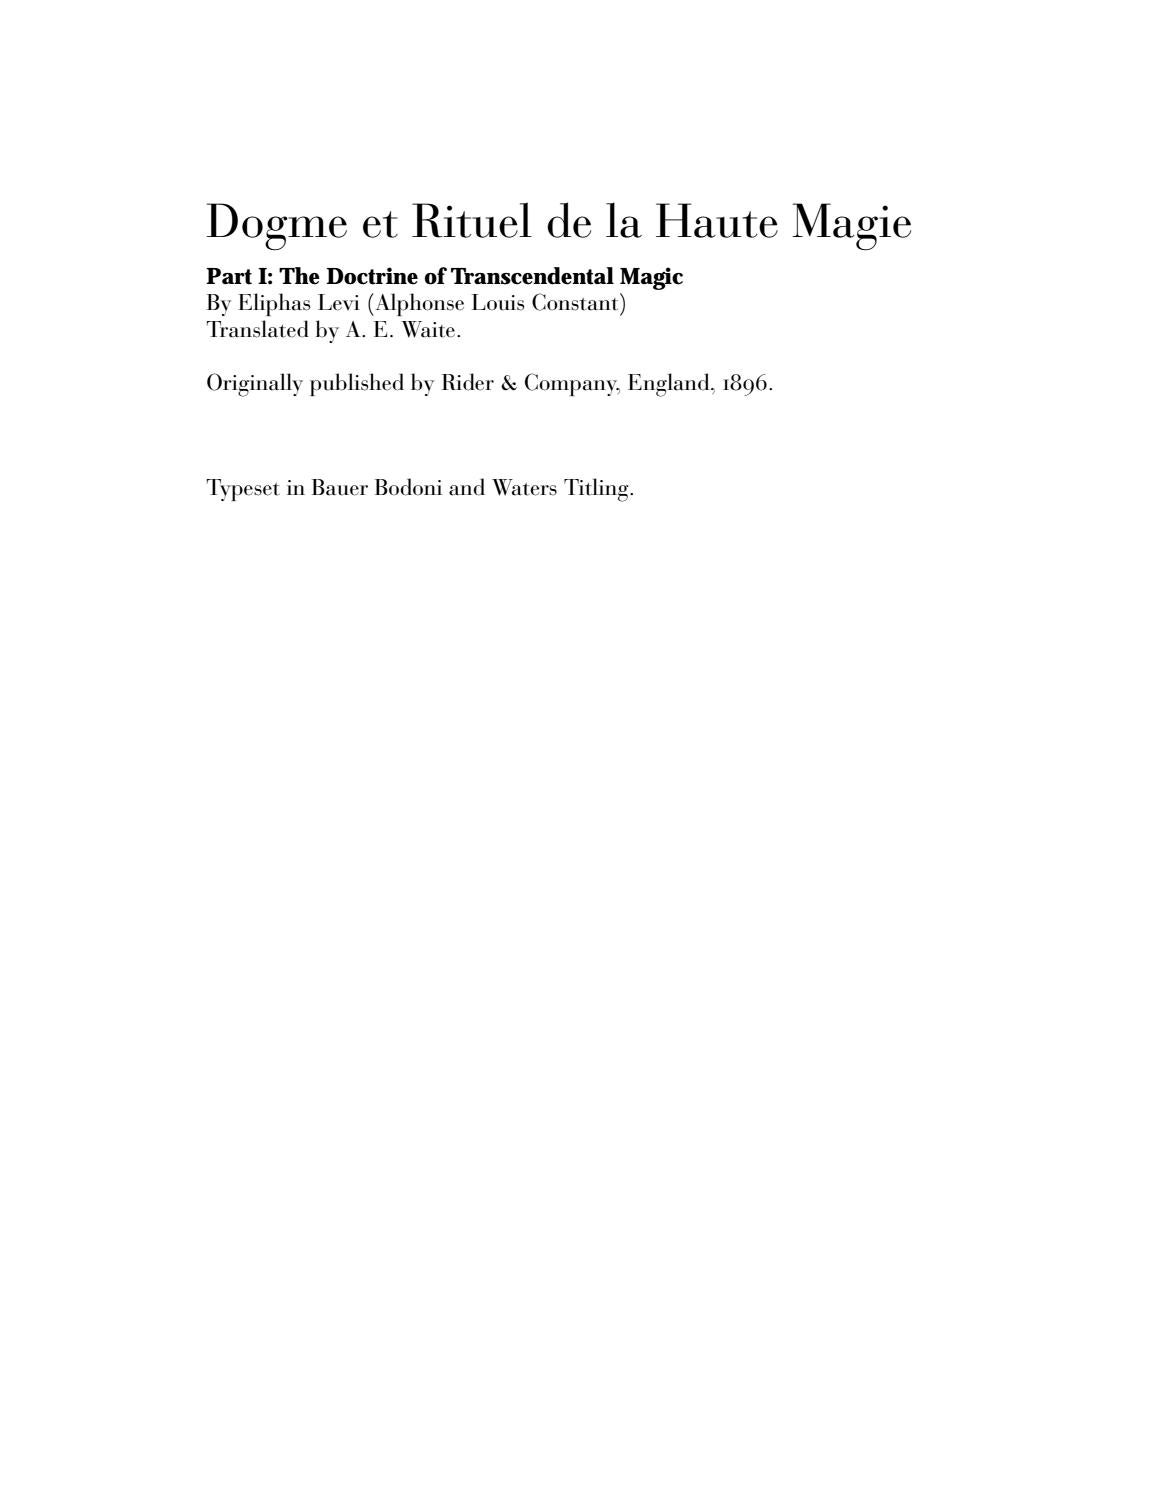 Transcendental Magic: Its Doctrine and Ritual by Eliphas